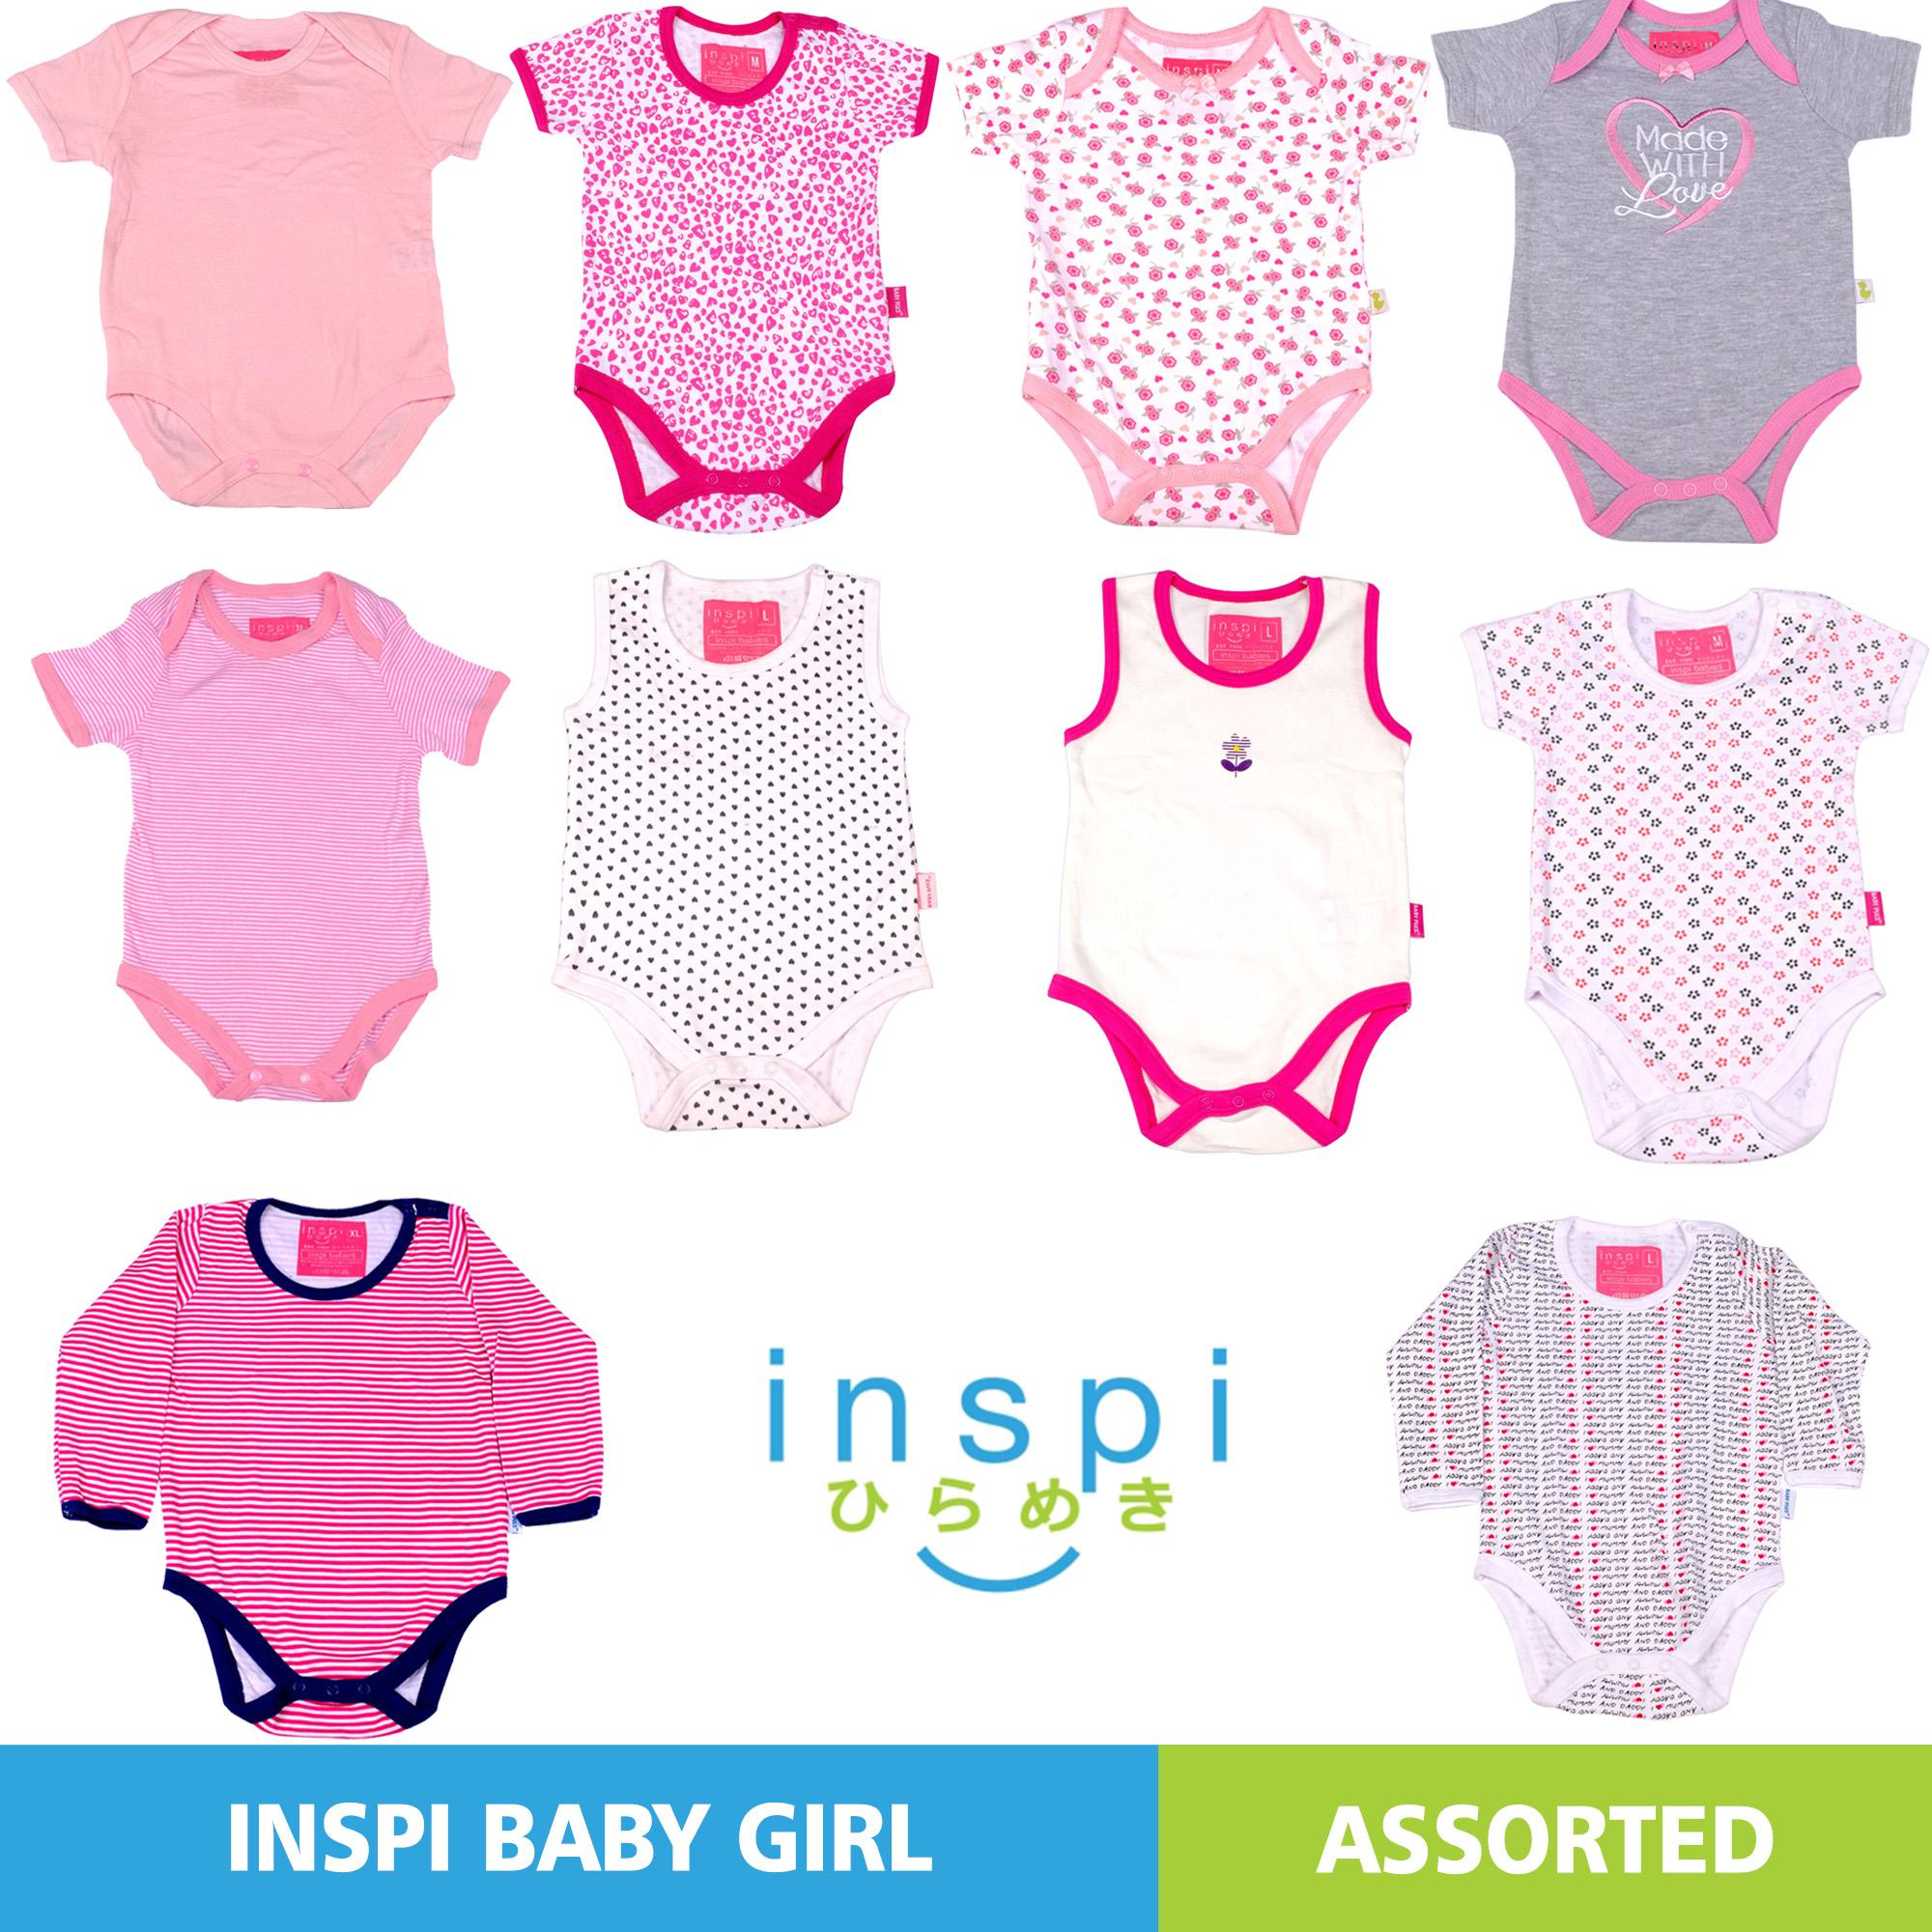 INSPI Babies Girls ASSORTED (Set of 2) 100% Cotton Onesies Newborn Infant  Quality f59251dc2